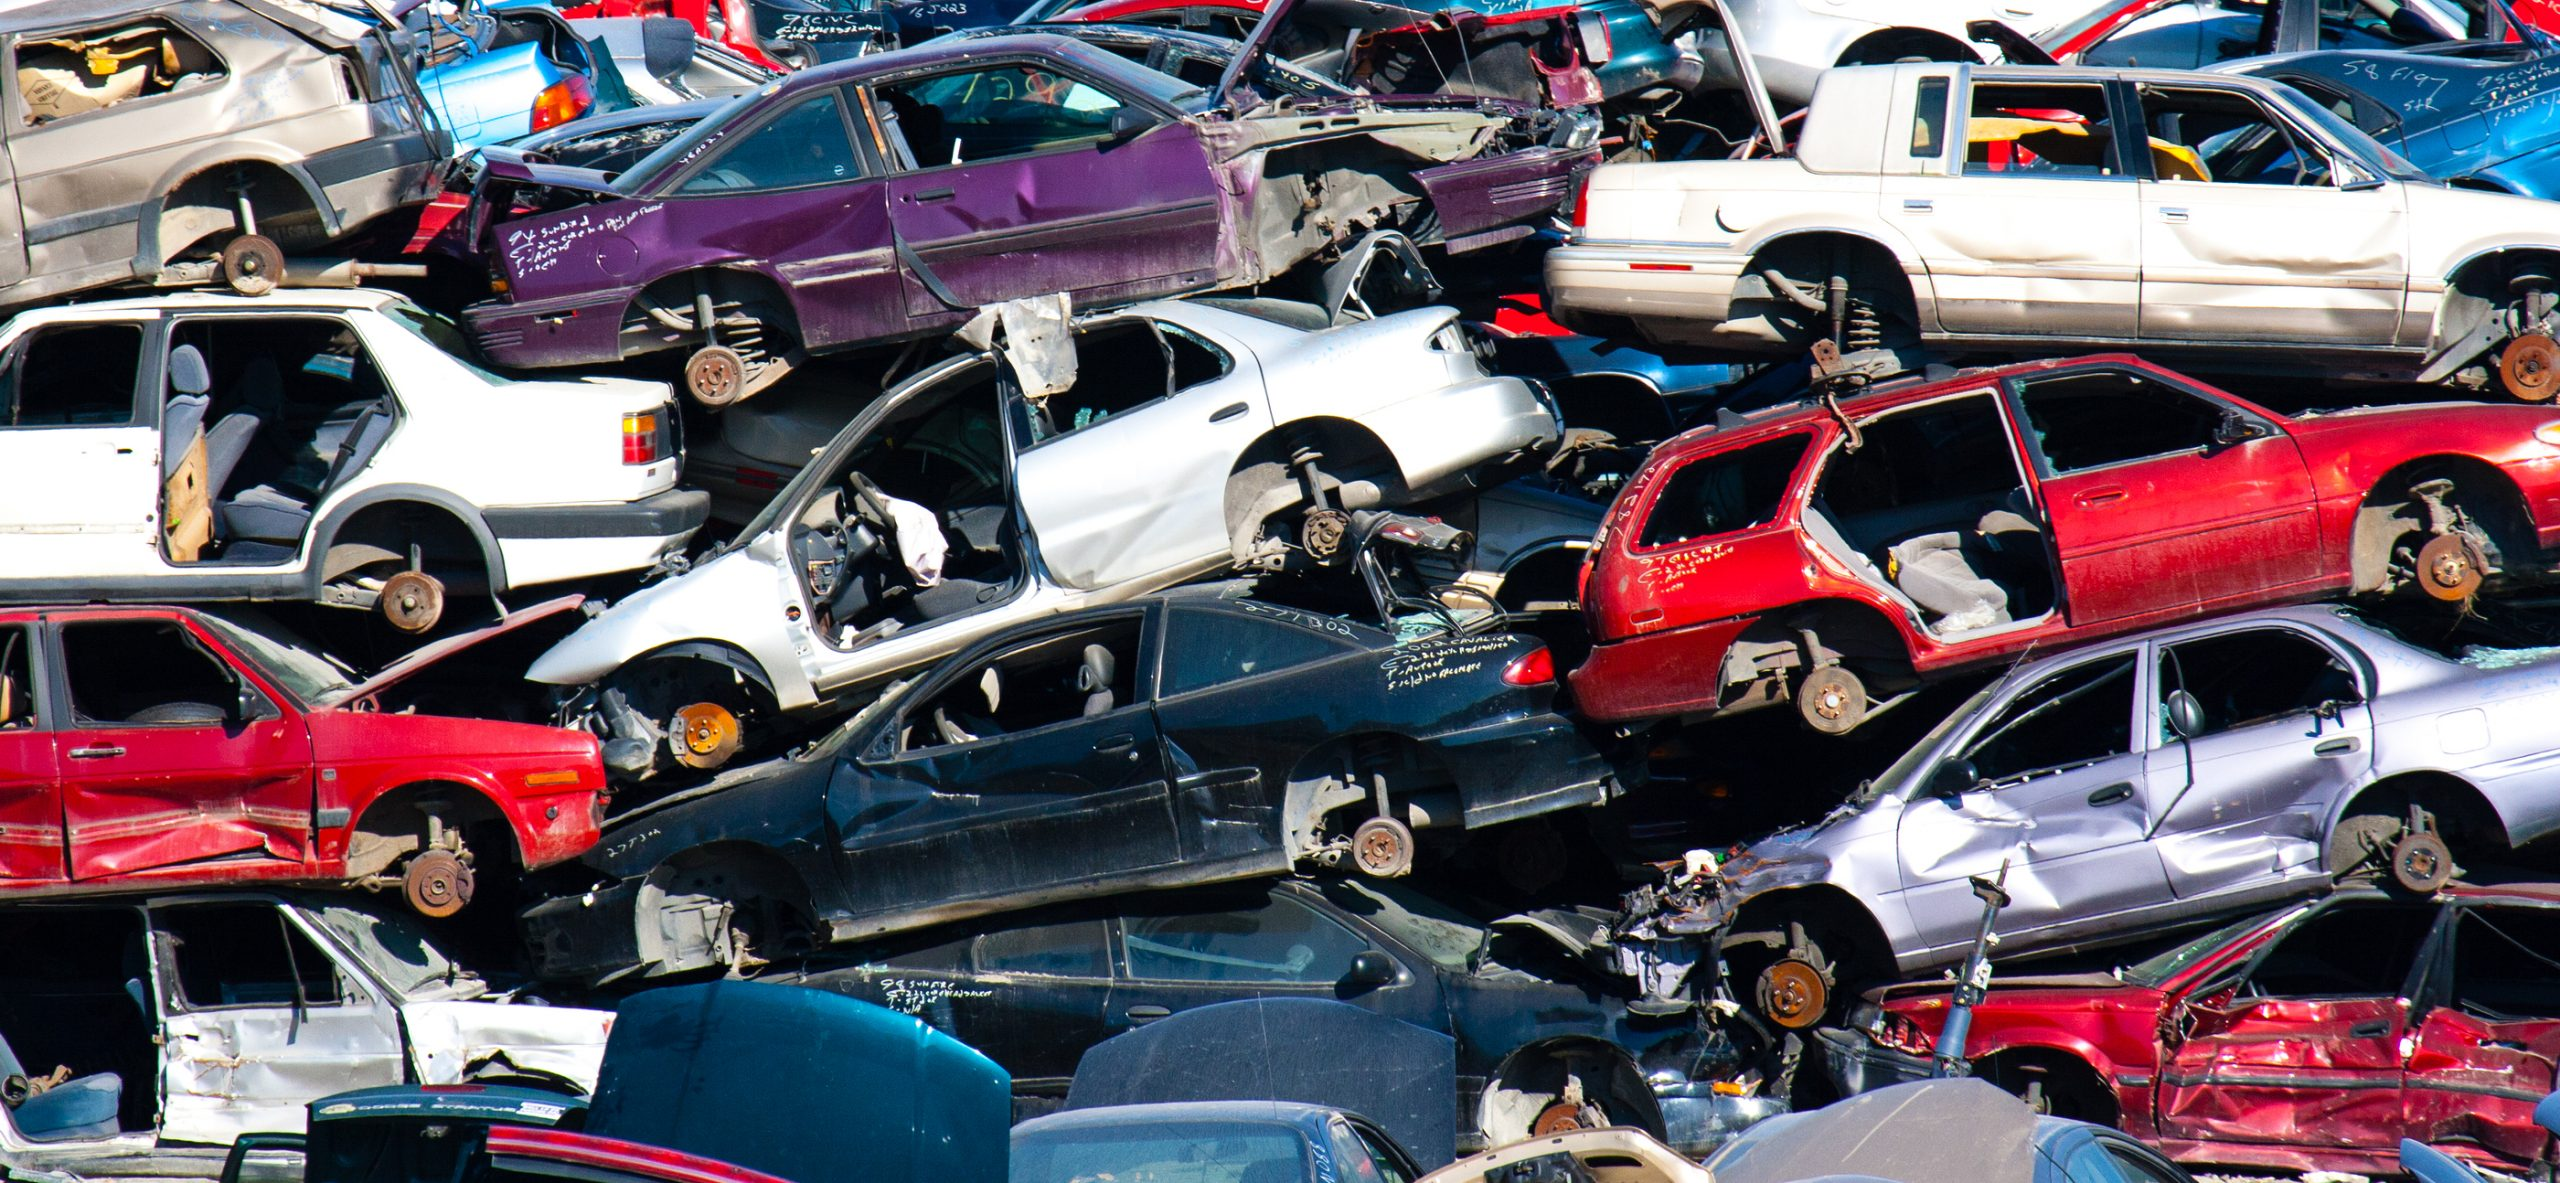 how to get rid of a junk car